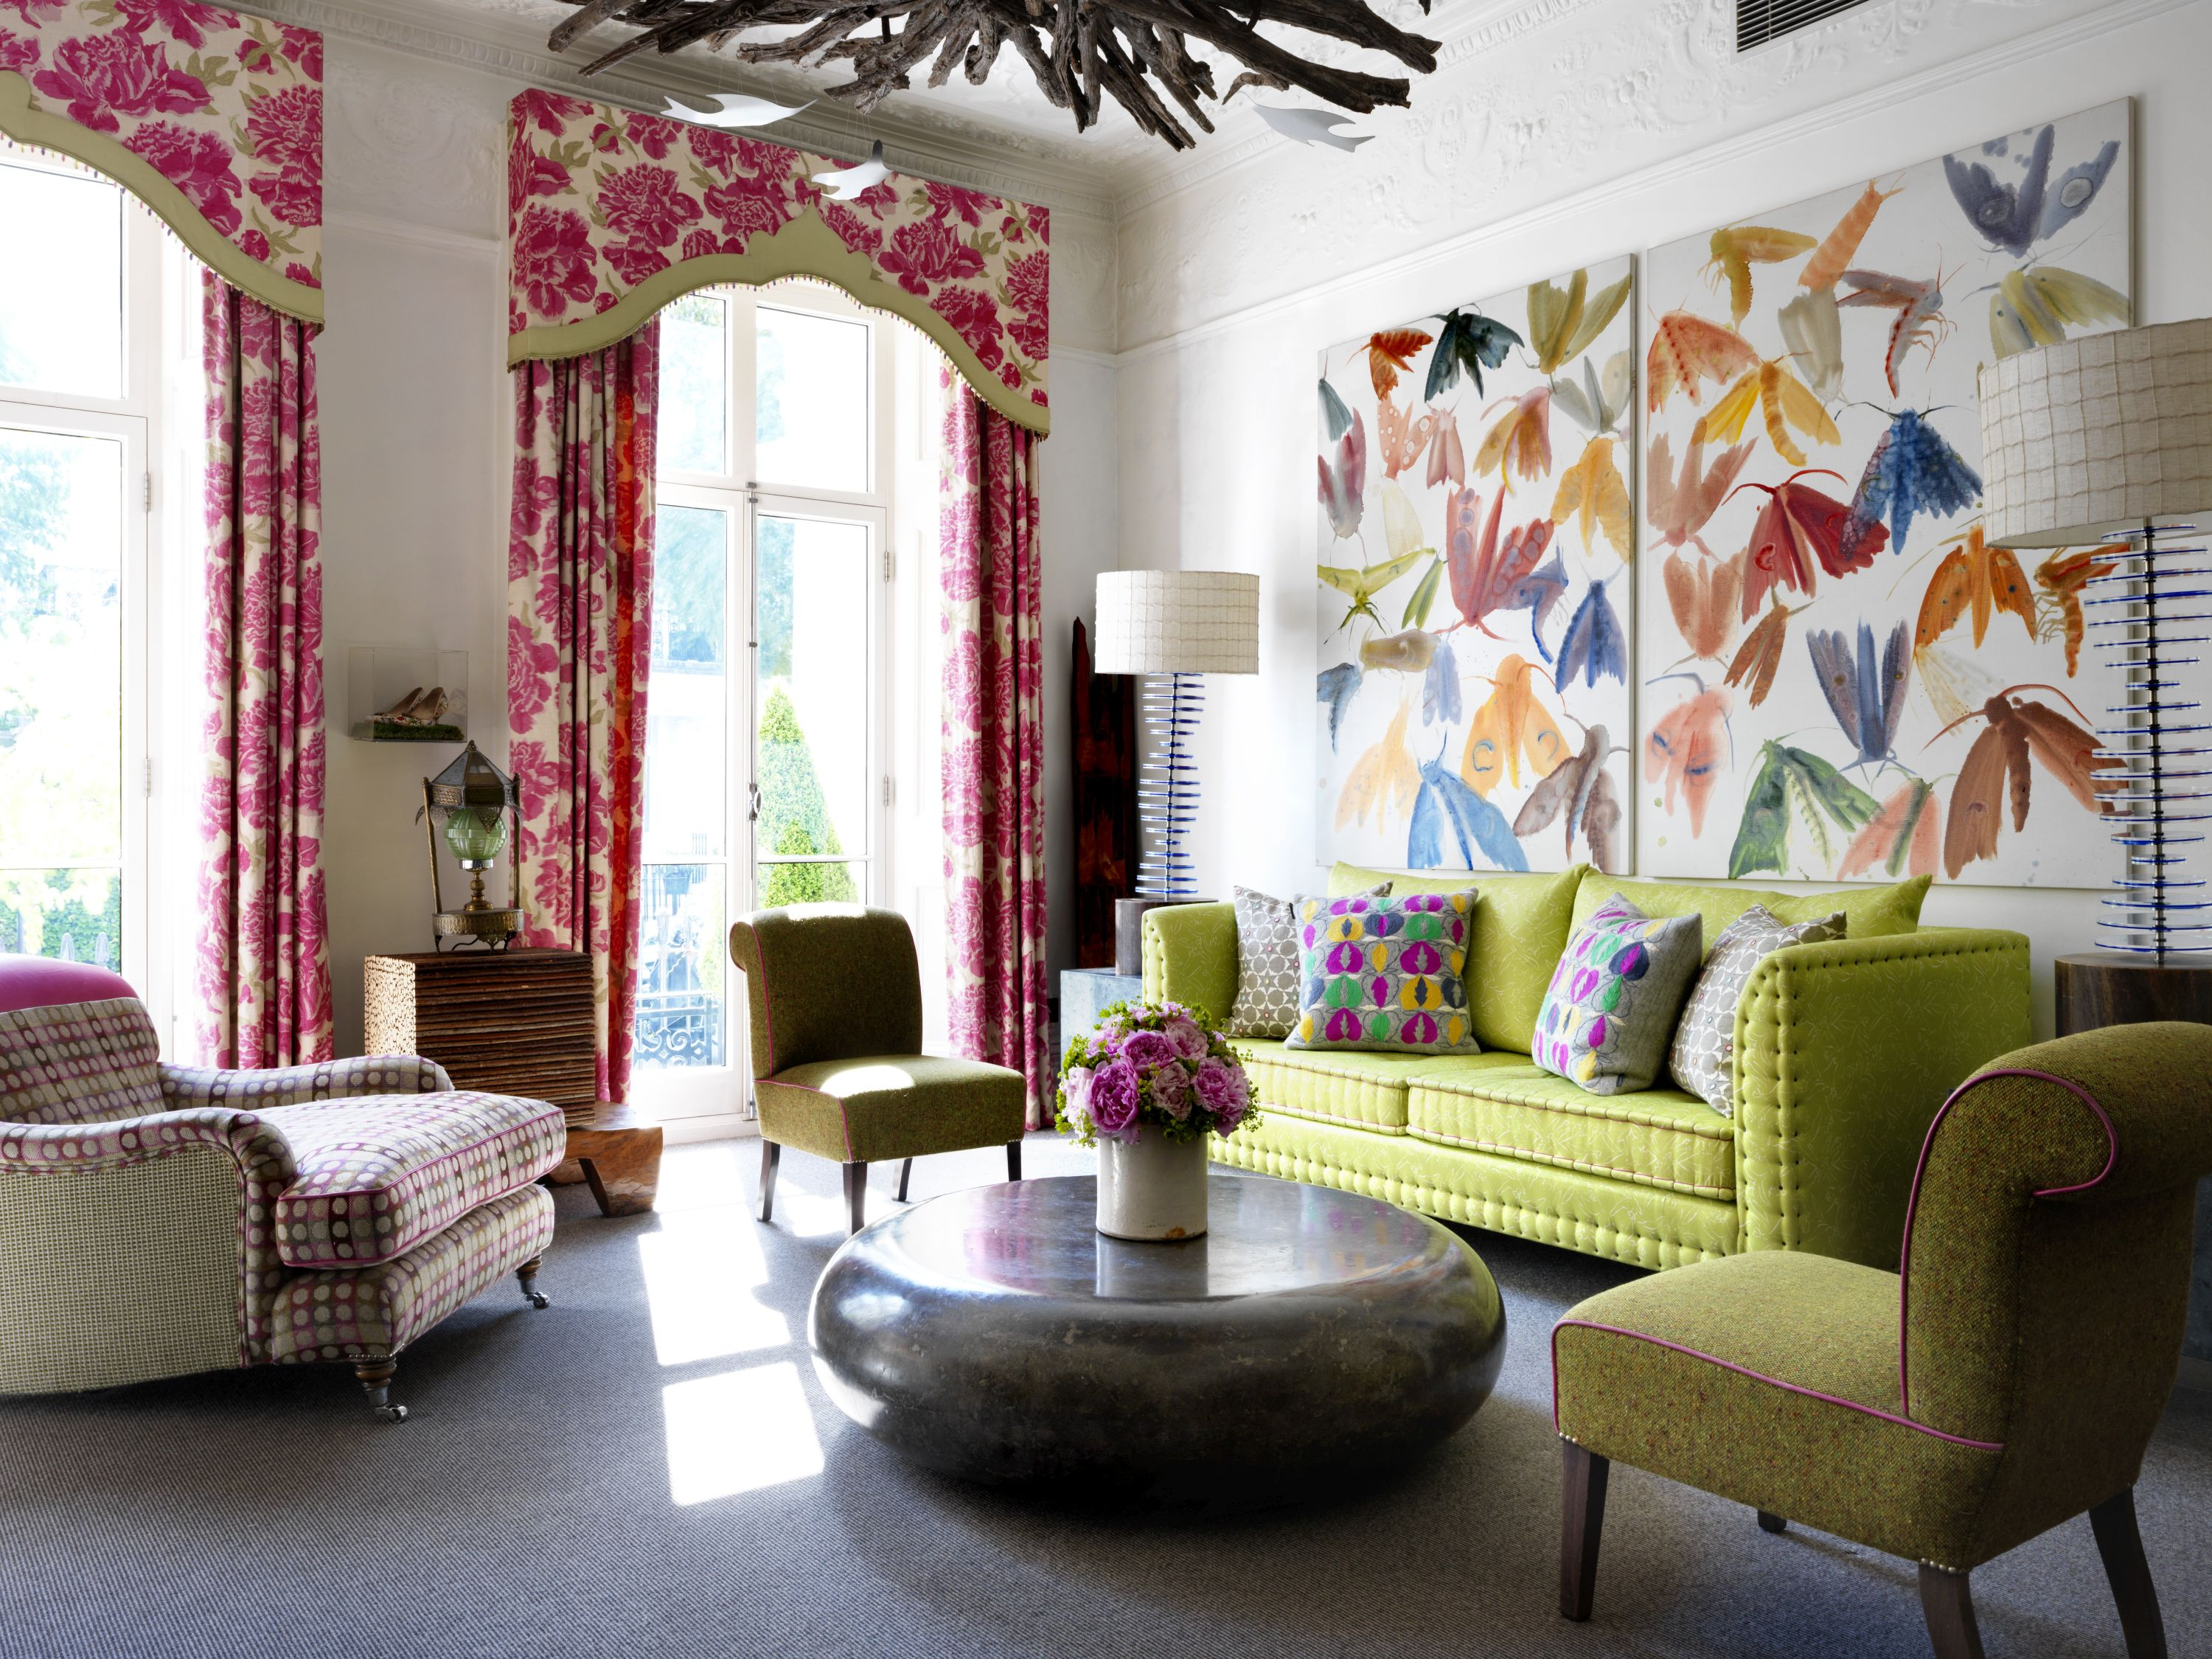 The Top 7 Hotels In South Kensington